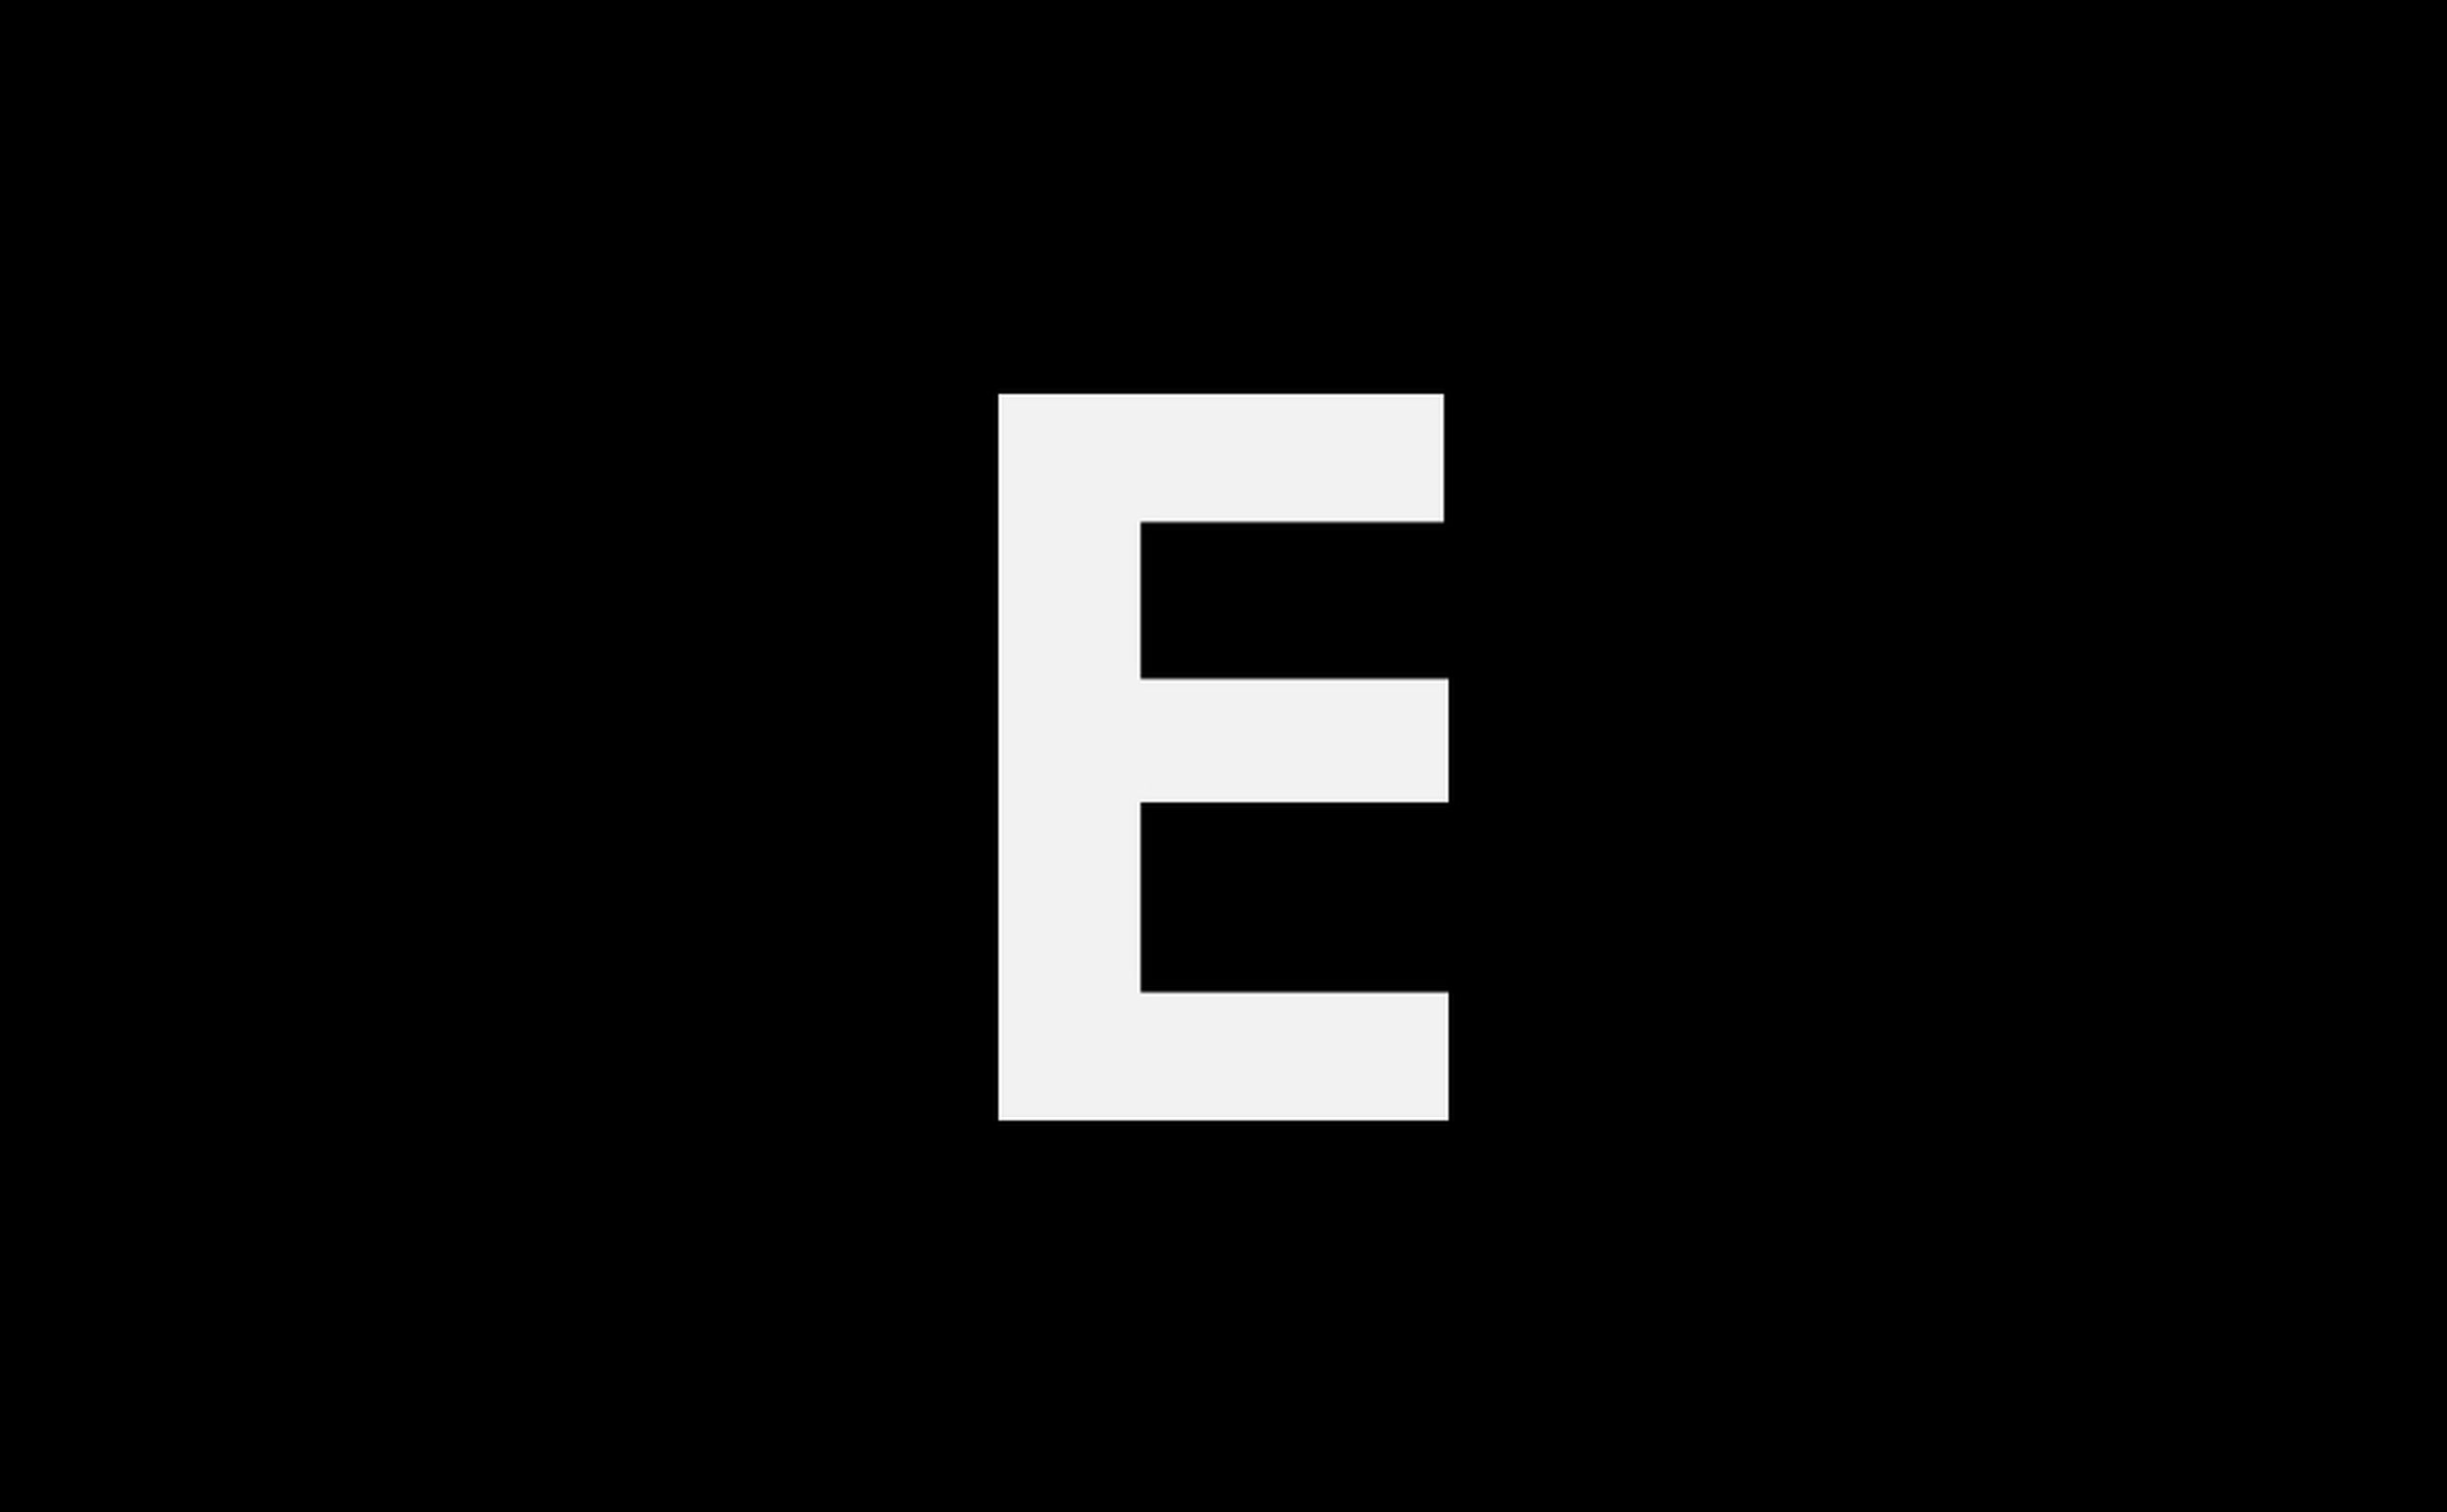 rear view, real people, casual clothing, three quarter length, footpath, lifestyles, architecture, women, walking, standing, people, tree, plant, day, city, water, leisure activity, adult, outdoors, hairstyle